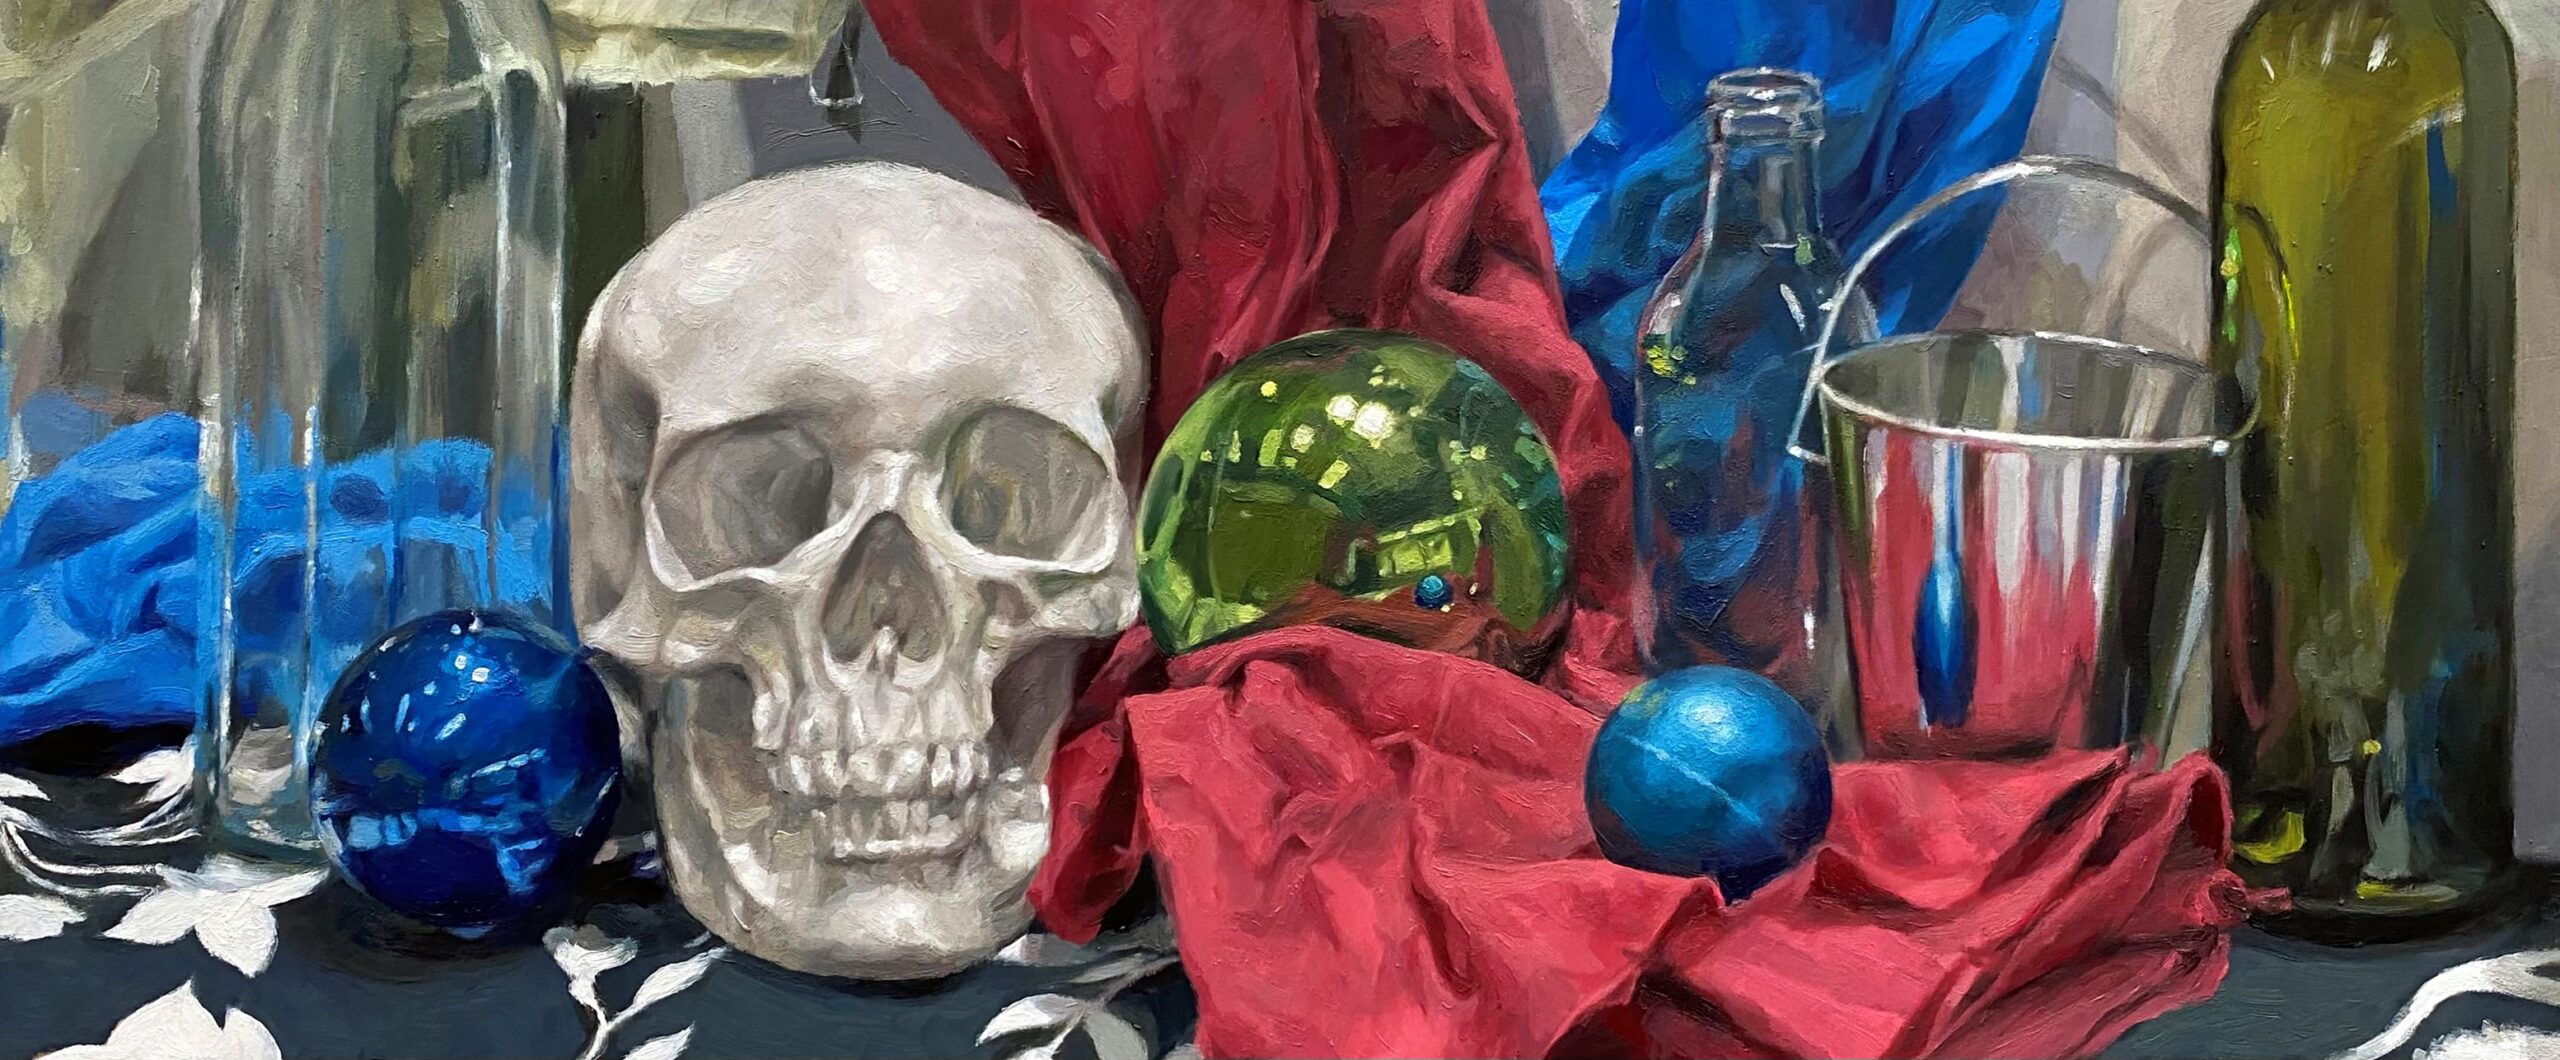 Alexia Jack, Skull and Objects